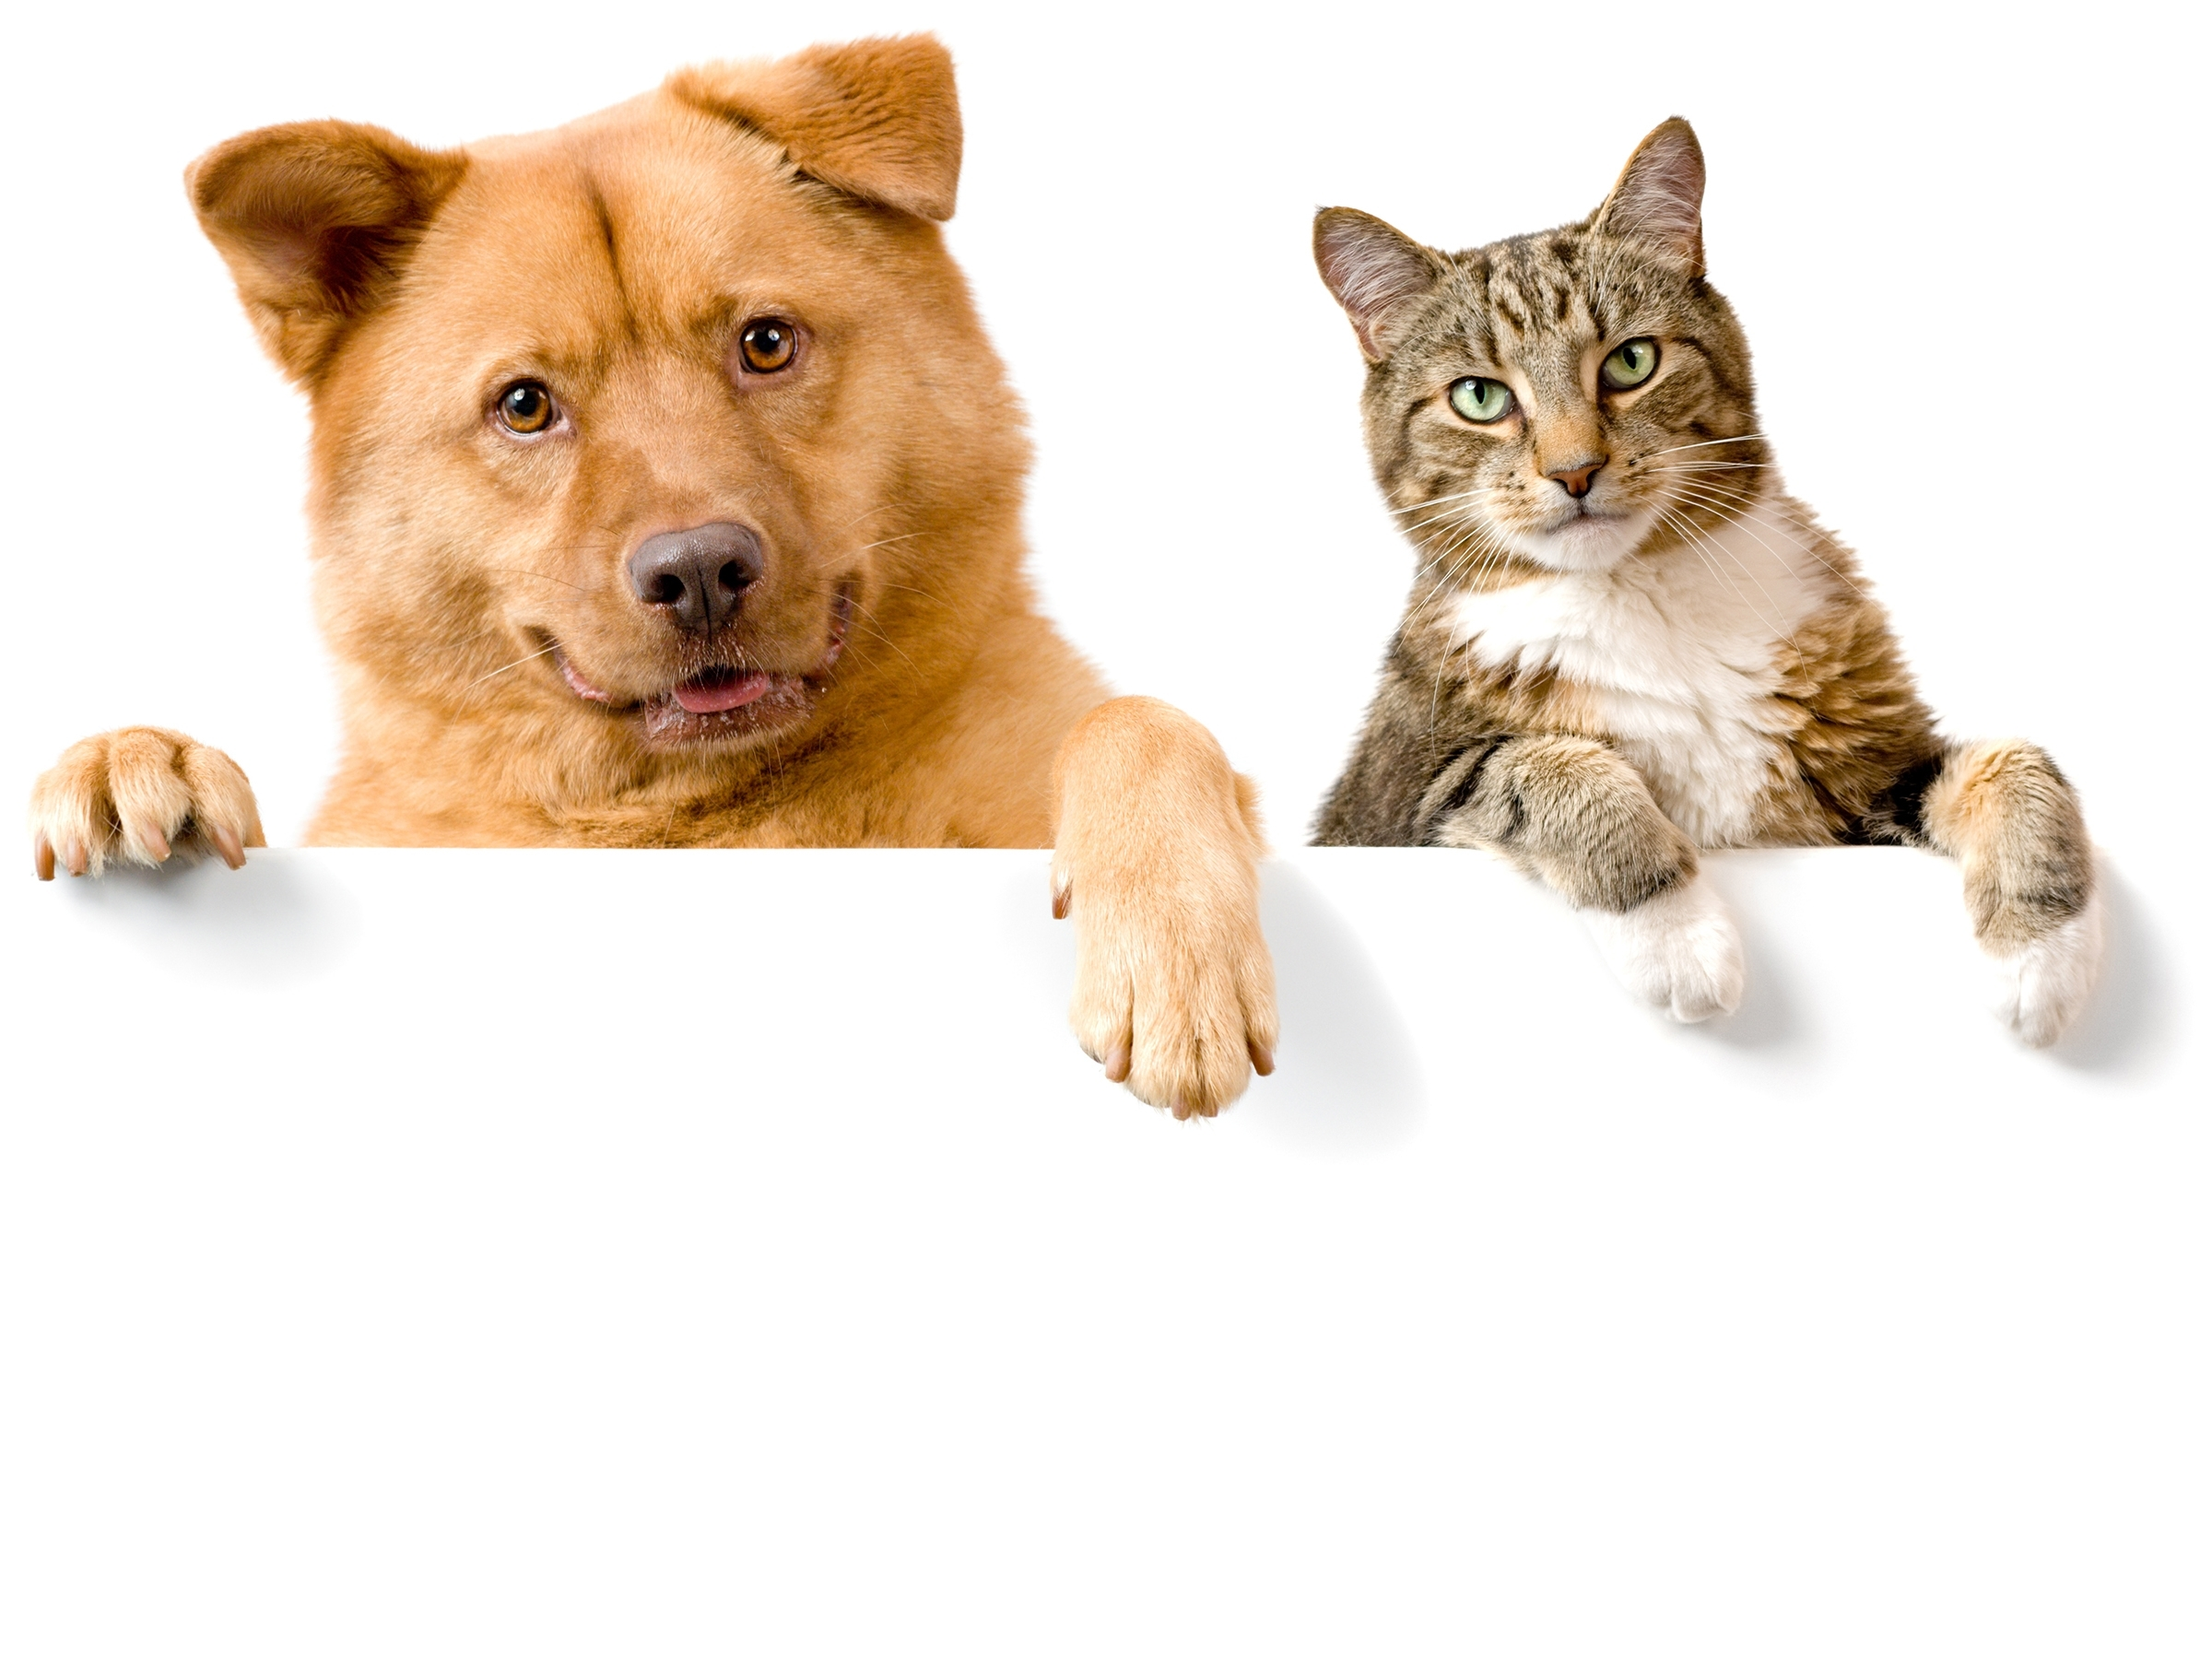 dog and cat wallpaper background for desktop wallpaper « long wallpapers